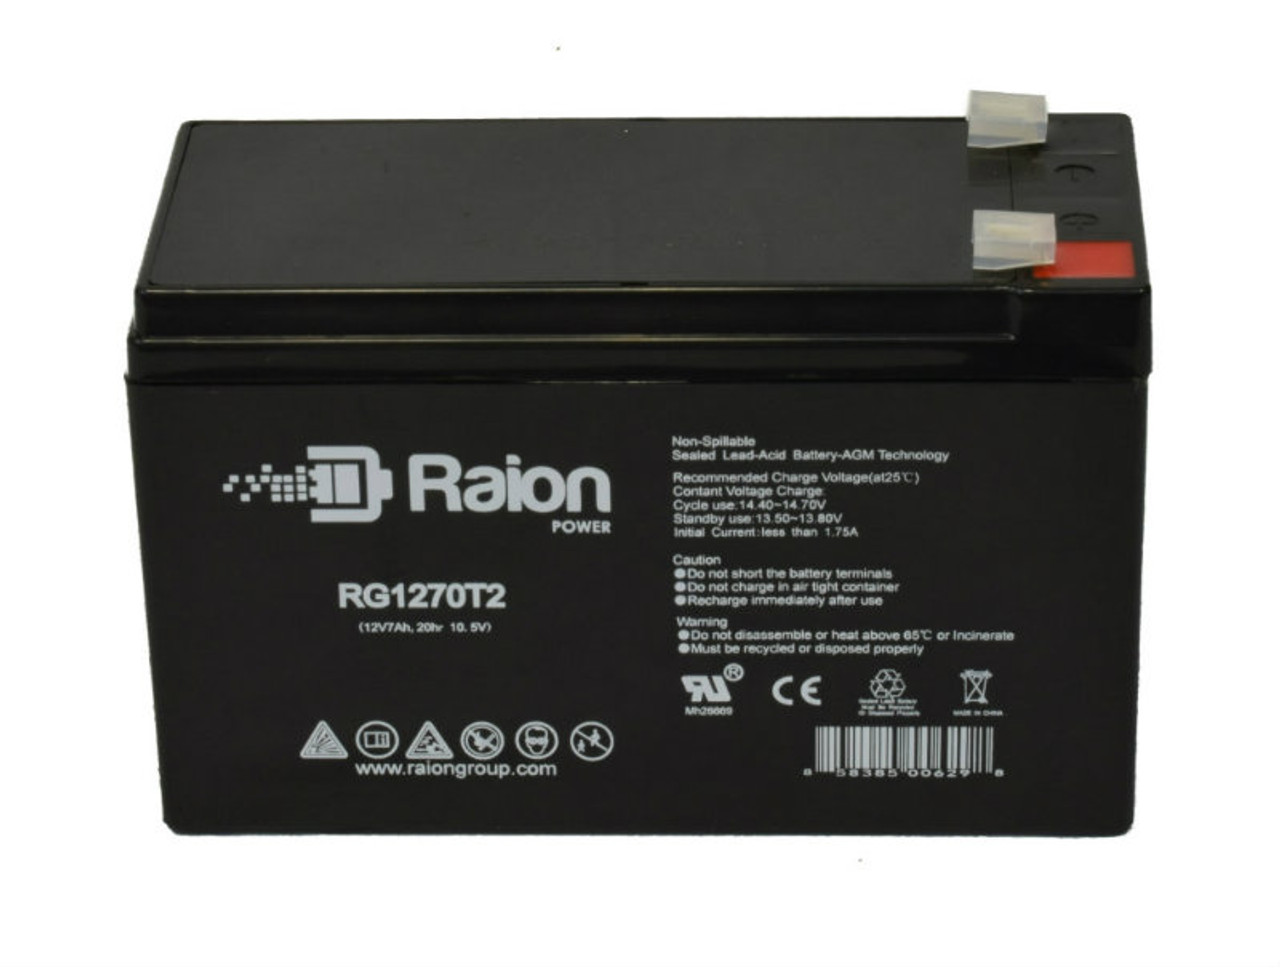 Raion Power 12V 7Ah SLA Battery With T1 Terminals For Long Way LW-6FM7.2J